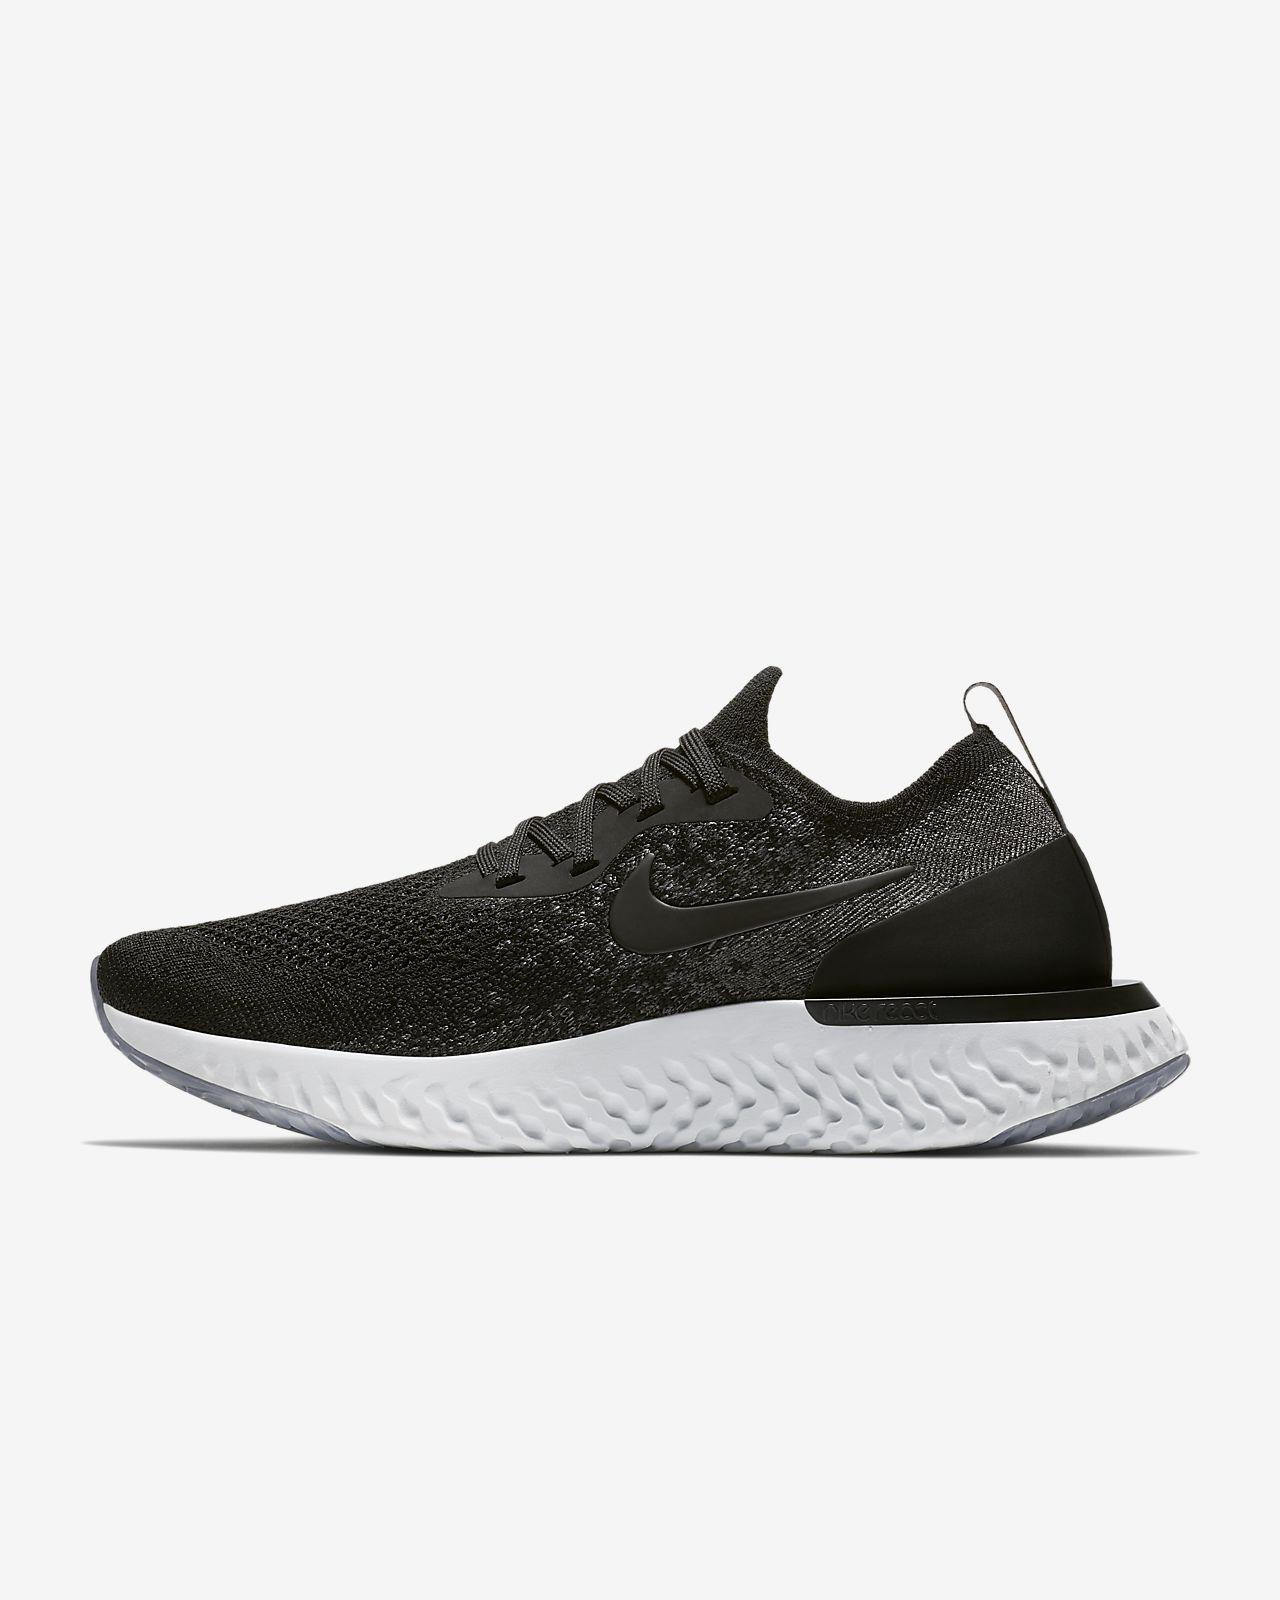 Nike WMNS Epic React Flyknit [AQ0070-001] Women Running Shoes Black/Dark Grey